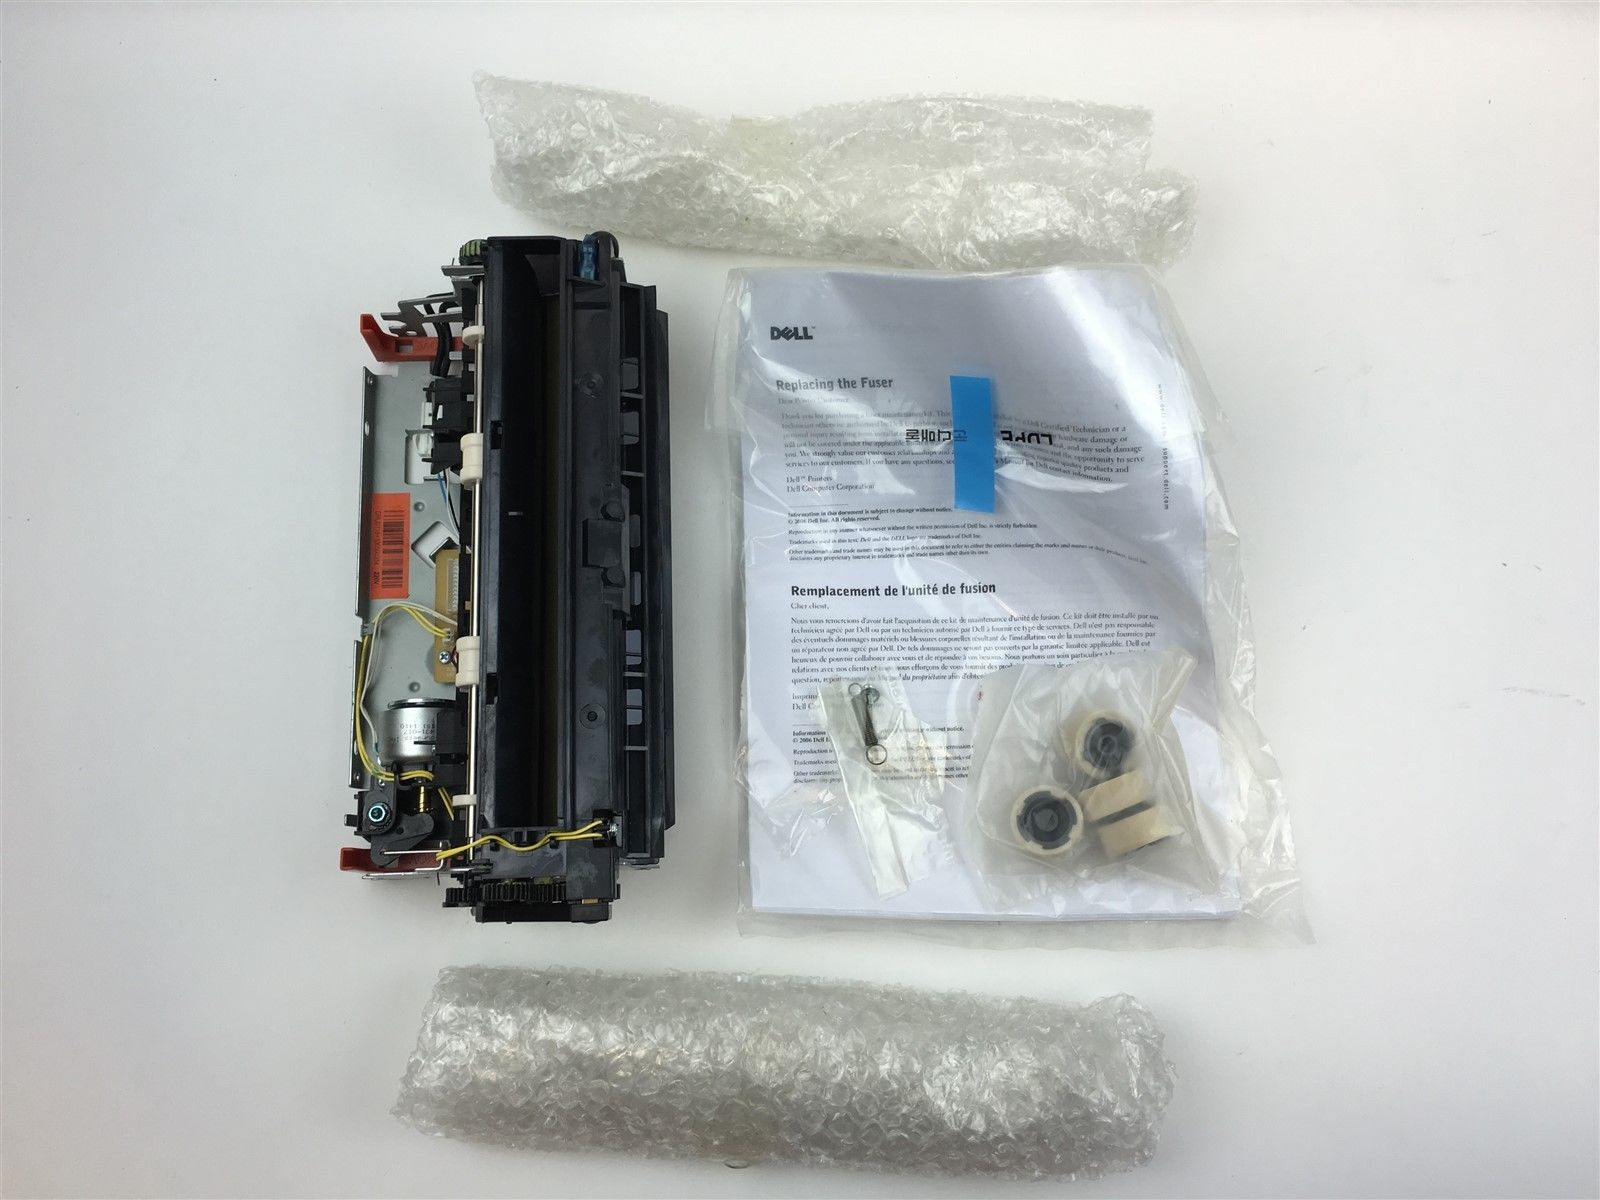 Genuine Dell 5210 Laser Printer Fuser maintenance Kit 220V HG371 0HG371